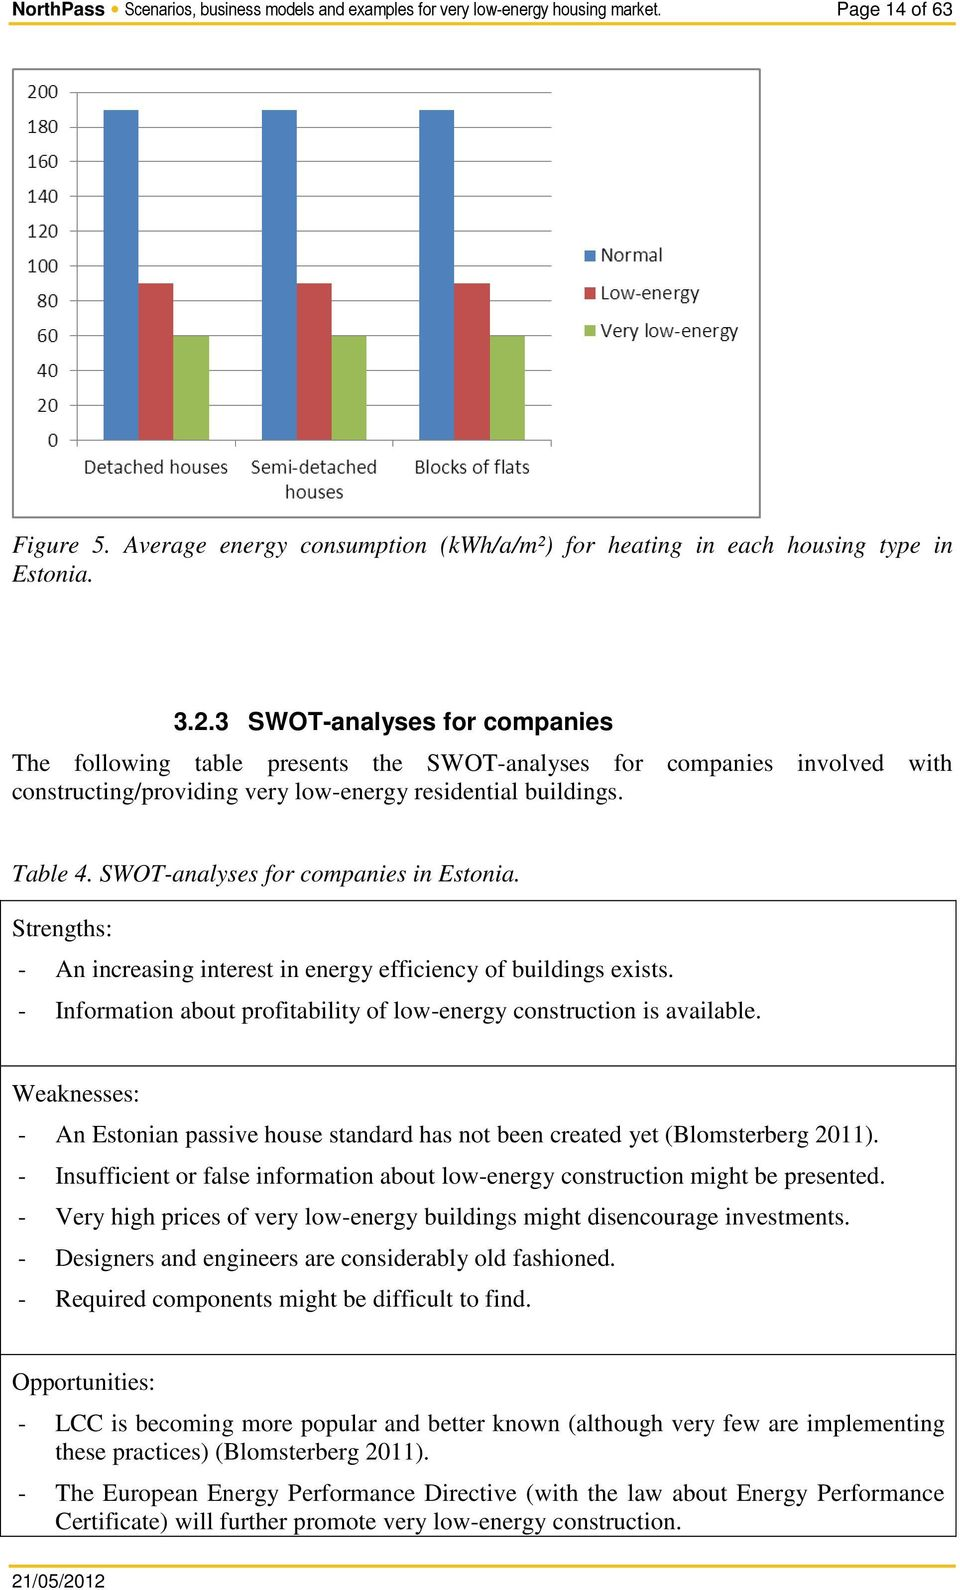 SWOT-analyses for companies in Estonia. Strengths: - An increasing interest in energy efficiency of buildings exists. - Information about profitability of low-energy construction is available.